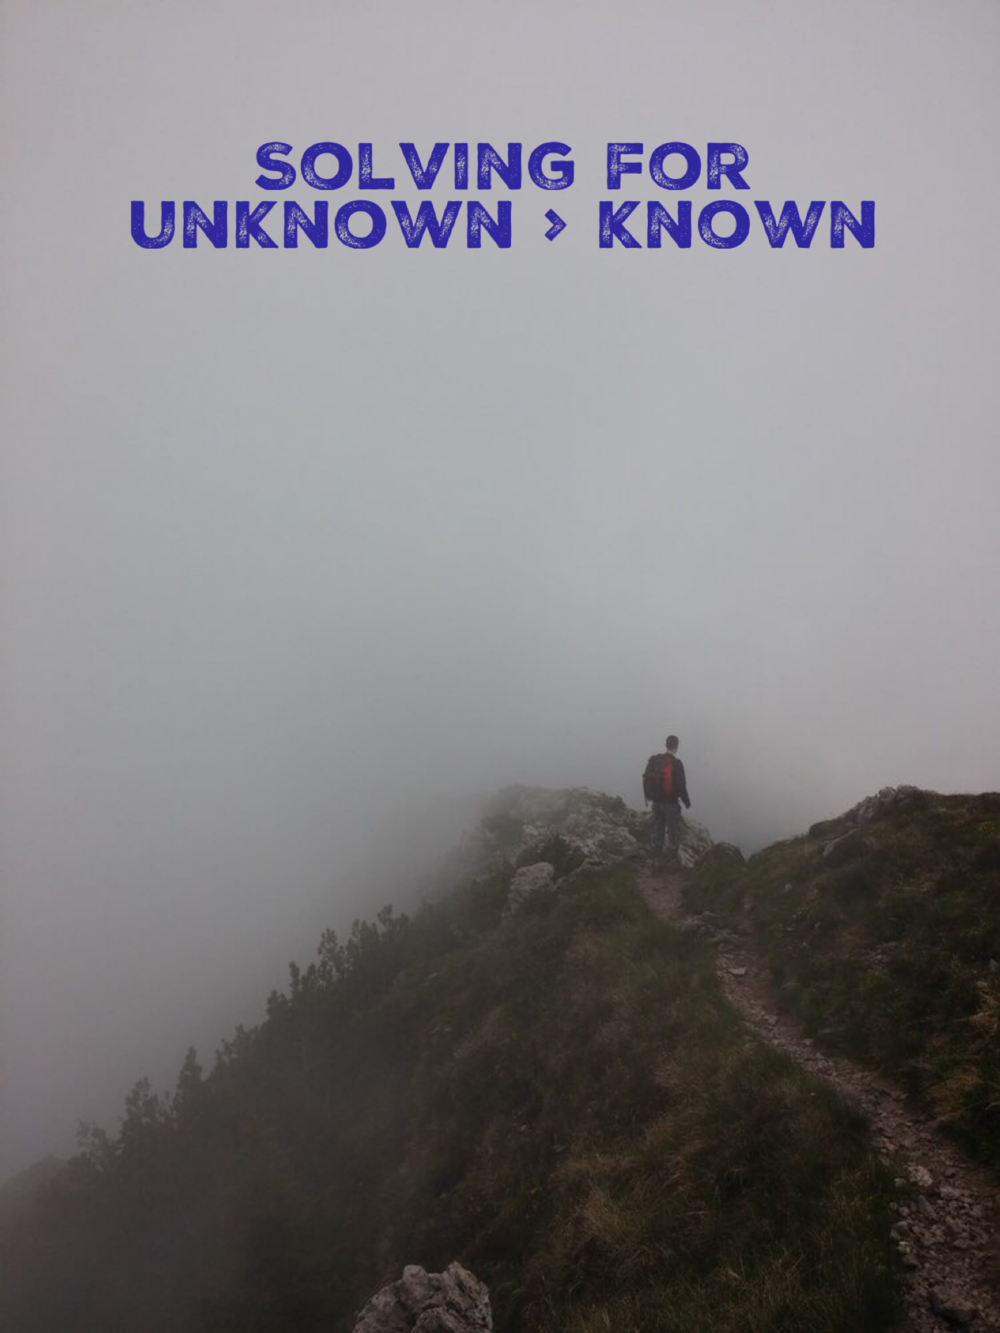 Solving for Unknown > Known